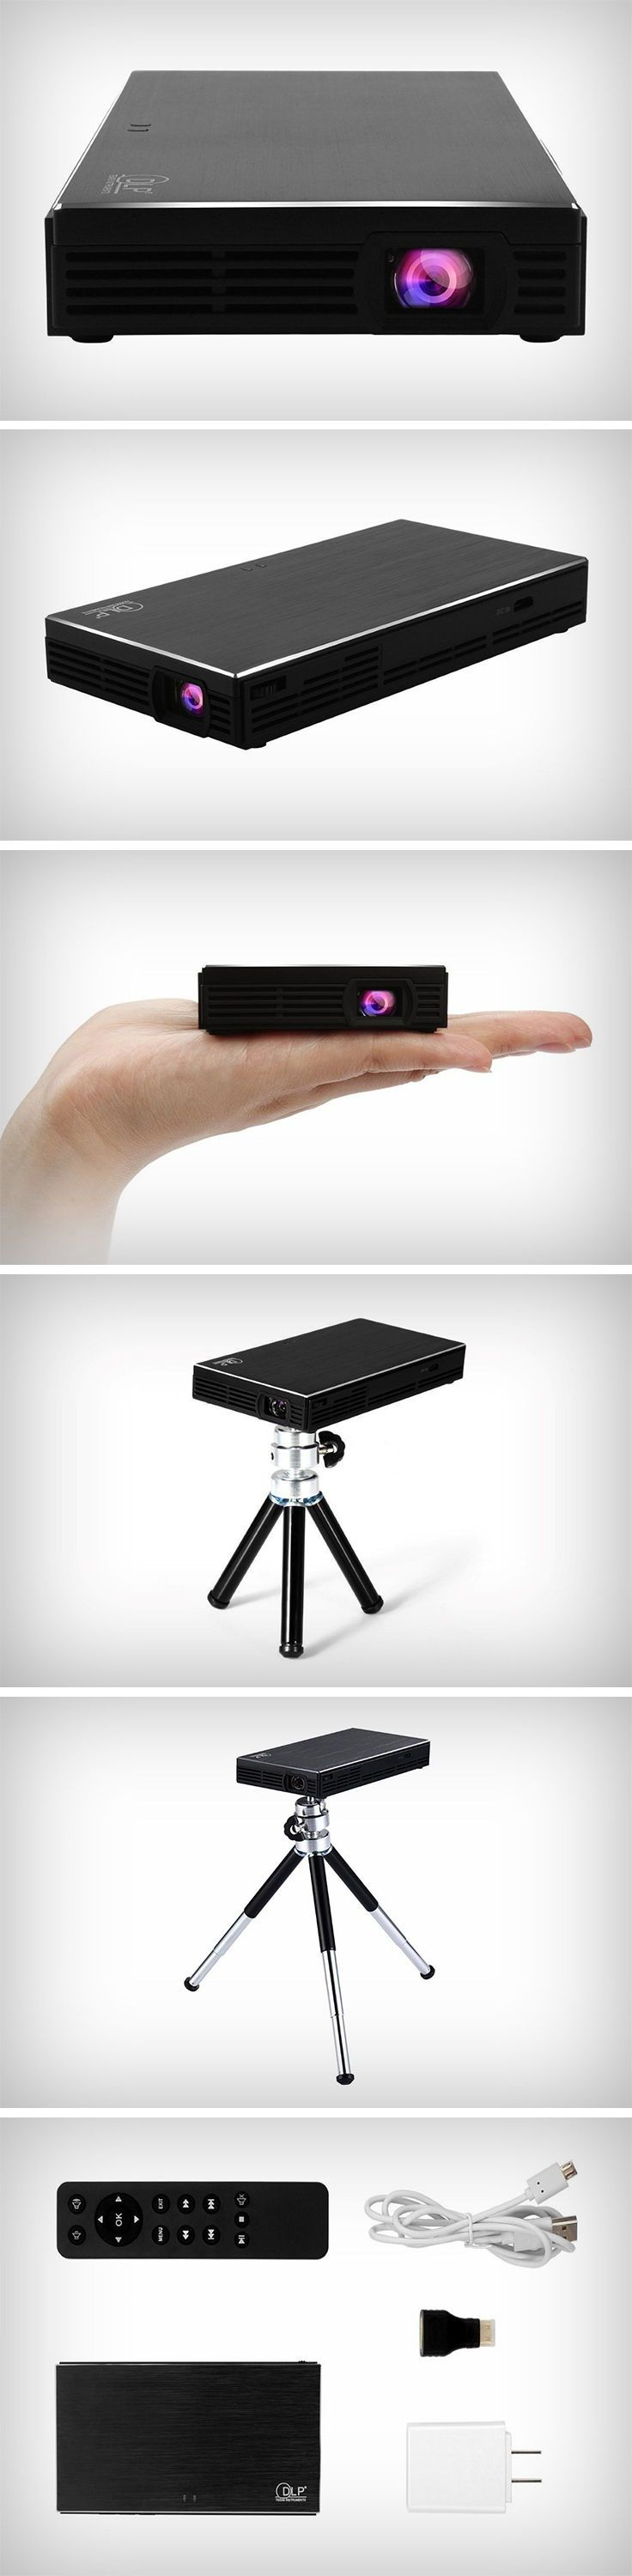 The FastFox DLP projector also fits into your pocket. It projects a screen anywhere from 30 to a 100 inches. This slick little device has the footprint of an external hard disk and can connect to your devices via USB or HDMI (or just plug that Chromecast in). It uses DLP technology to provide an image that's better in quality than an LCD and even heats up less. Weighing just over 200 grams, the FastFox comes with a tripod mount and even a remote control. BUY NOW!